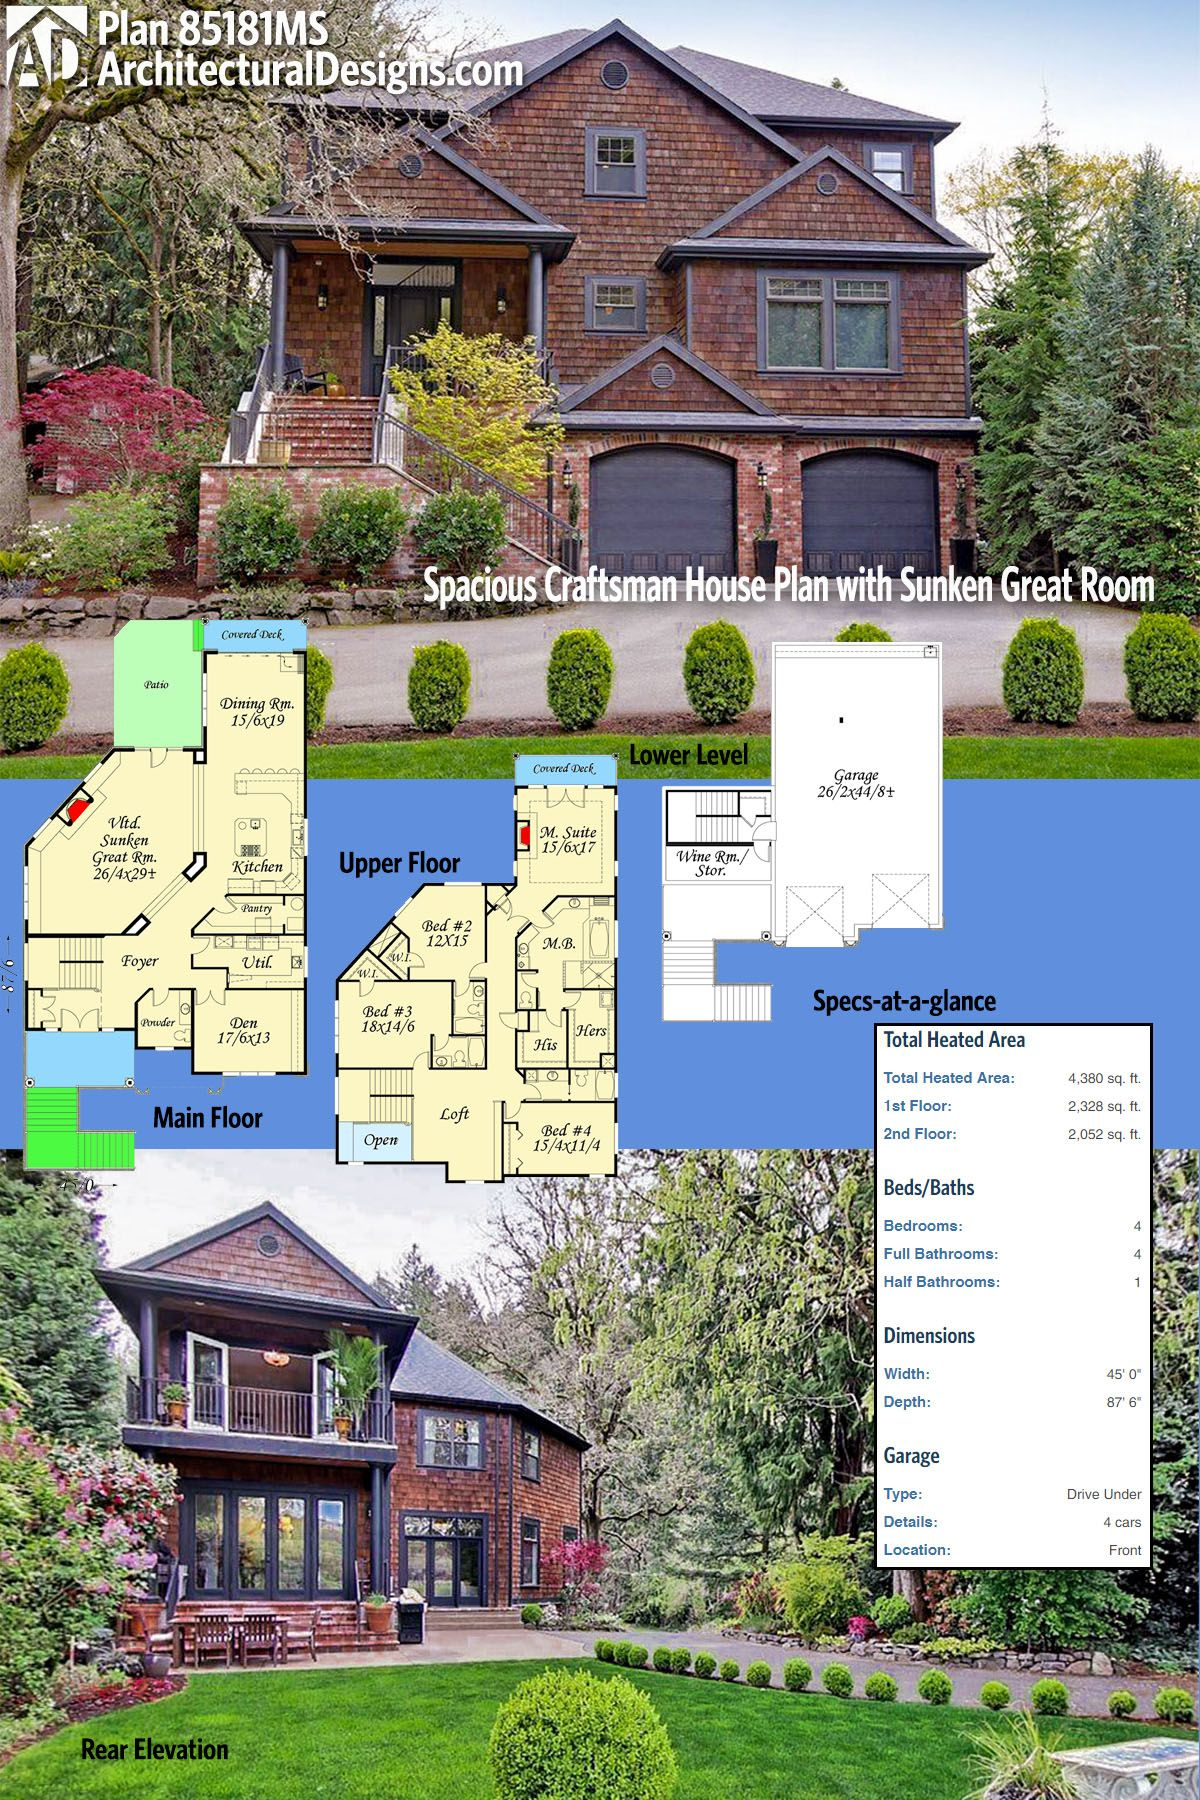 Architectural Designs Craftsman House Plan 85181MS has